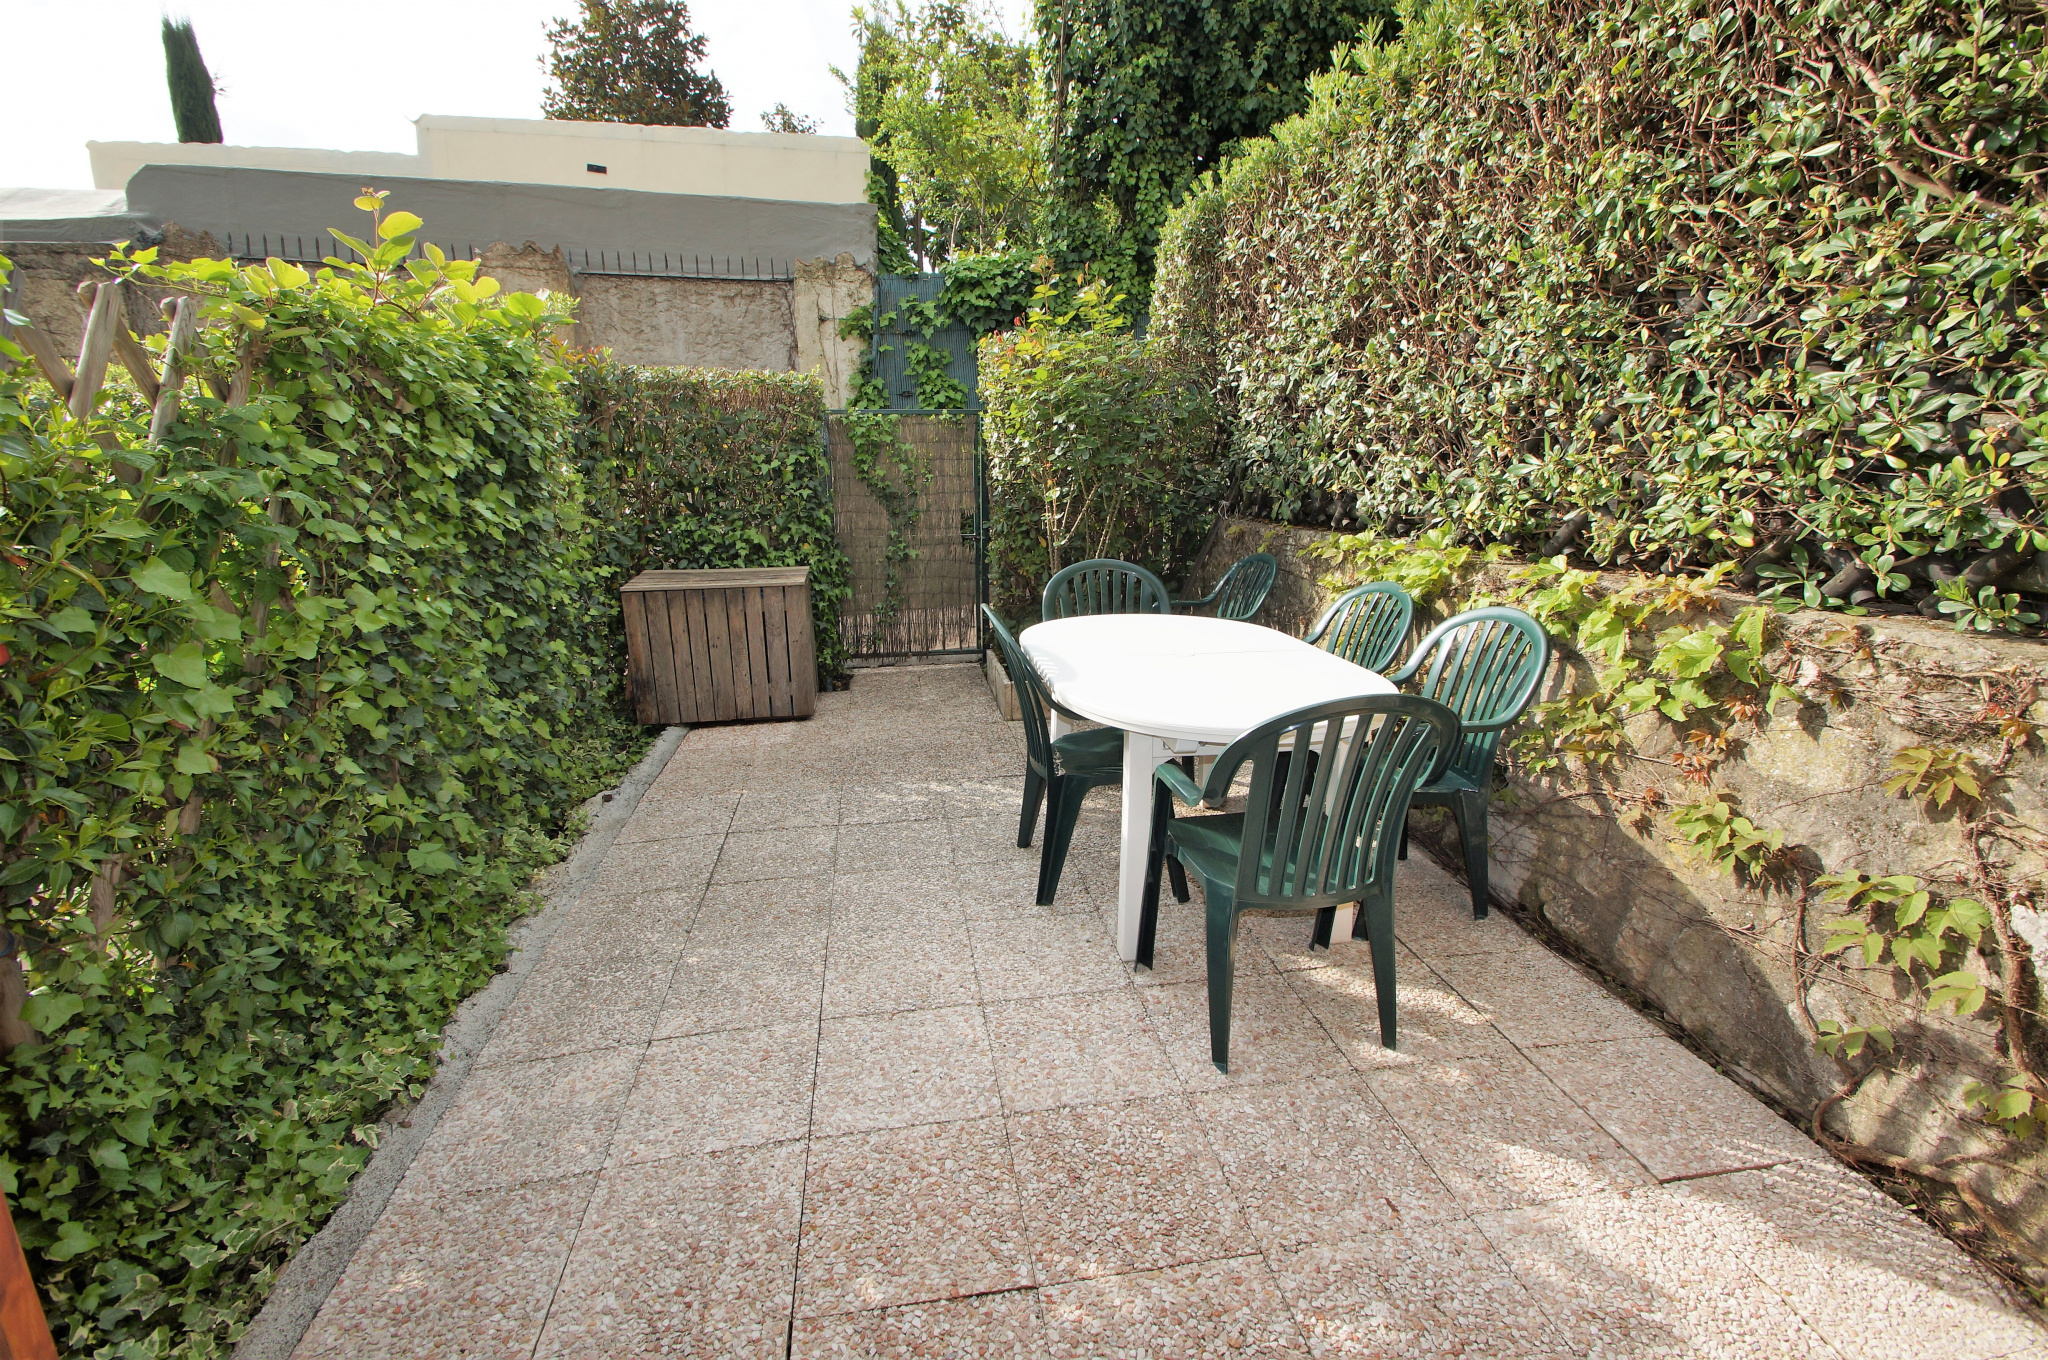 VENCE - Pleasant 1 bedroom duplex house with terrace. Car park. Swimming pool.